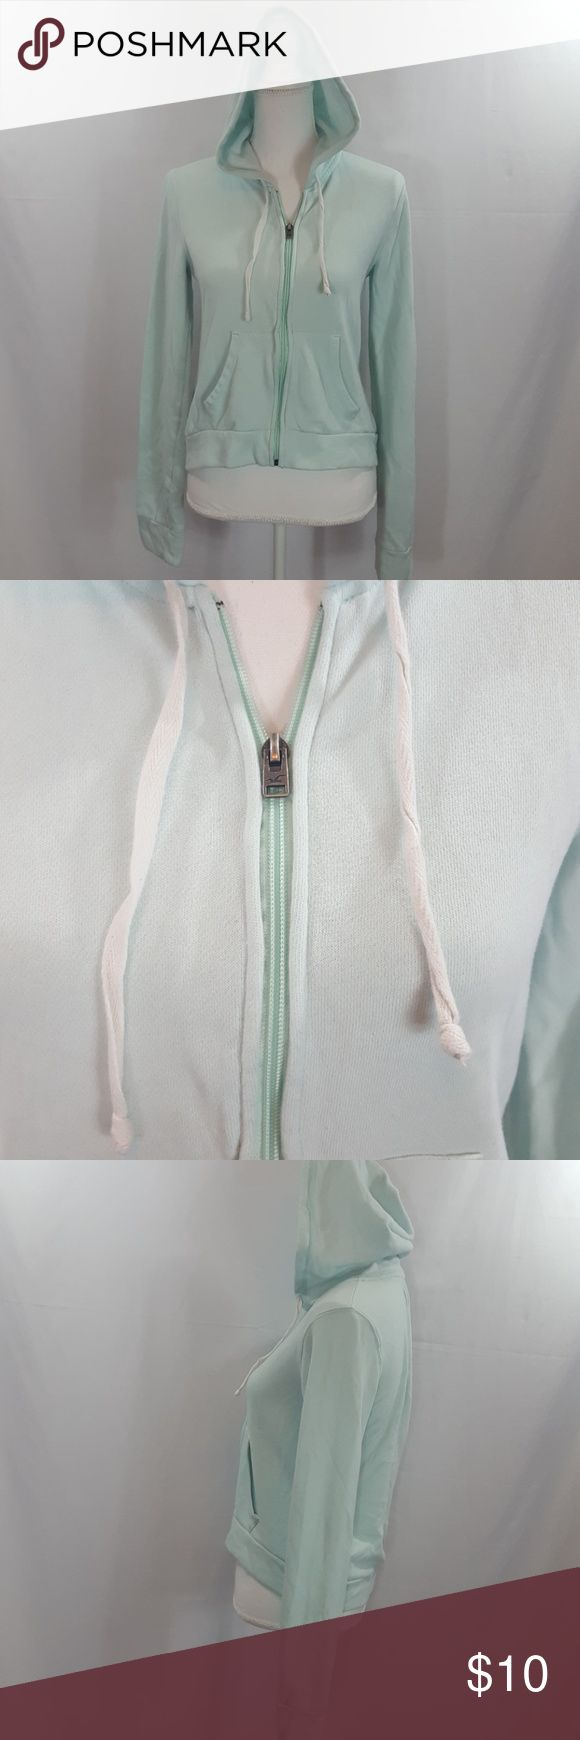 Hollister, light blue zip up hoodie USED, size Small, zip up hoodie. Hollister Tops Sweatshirts & Hoodies